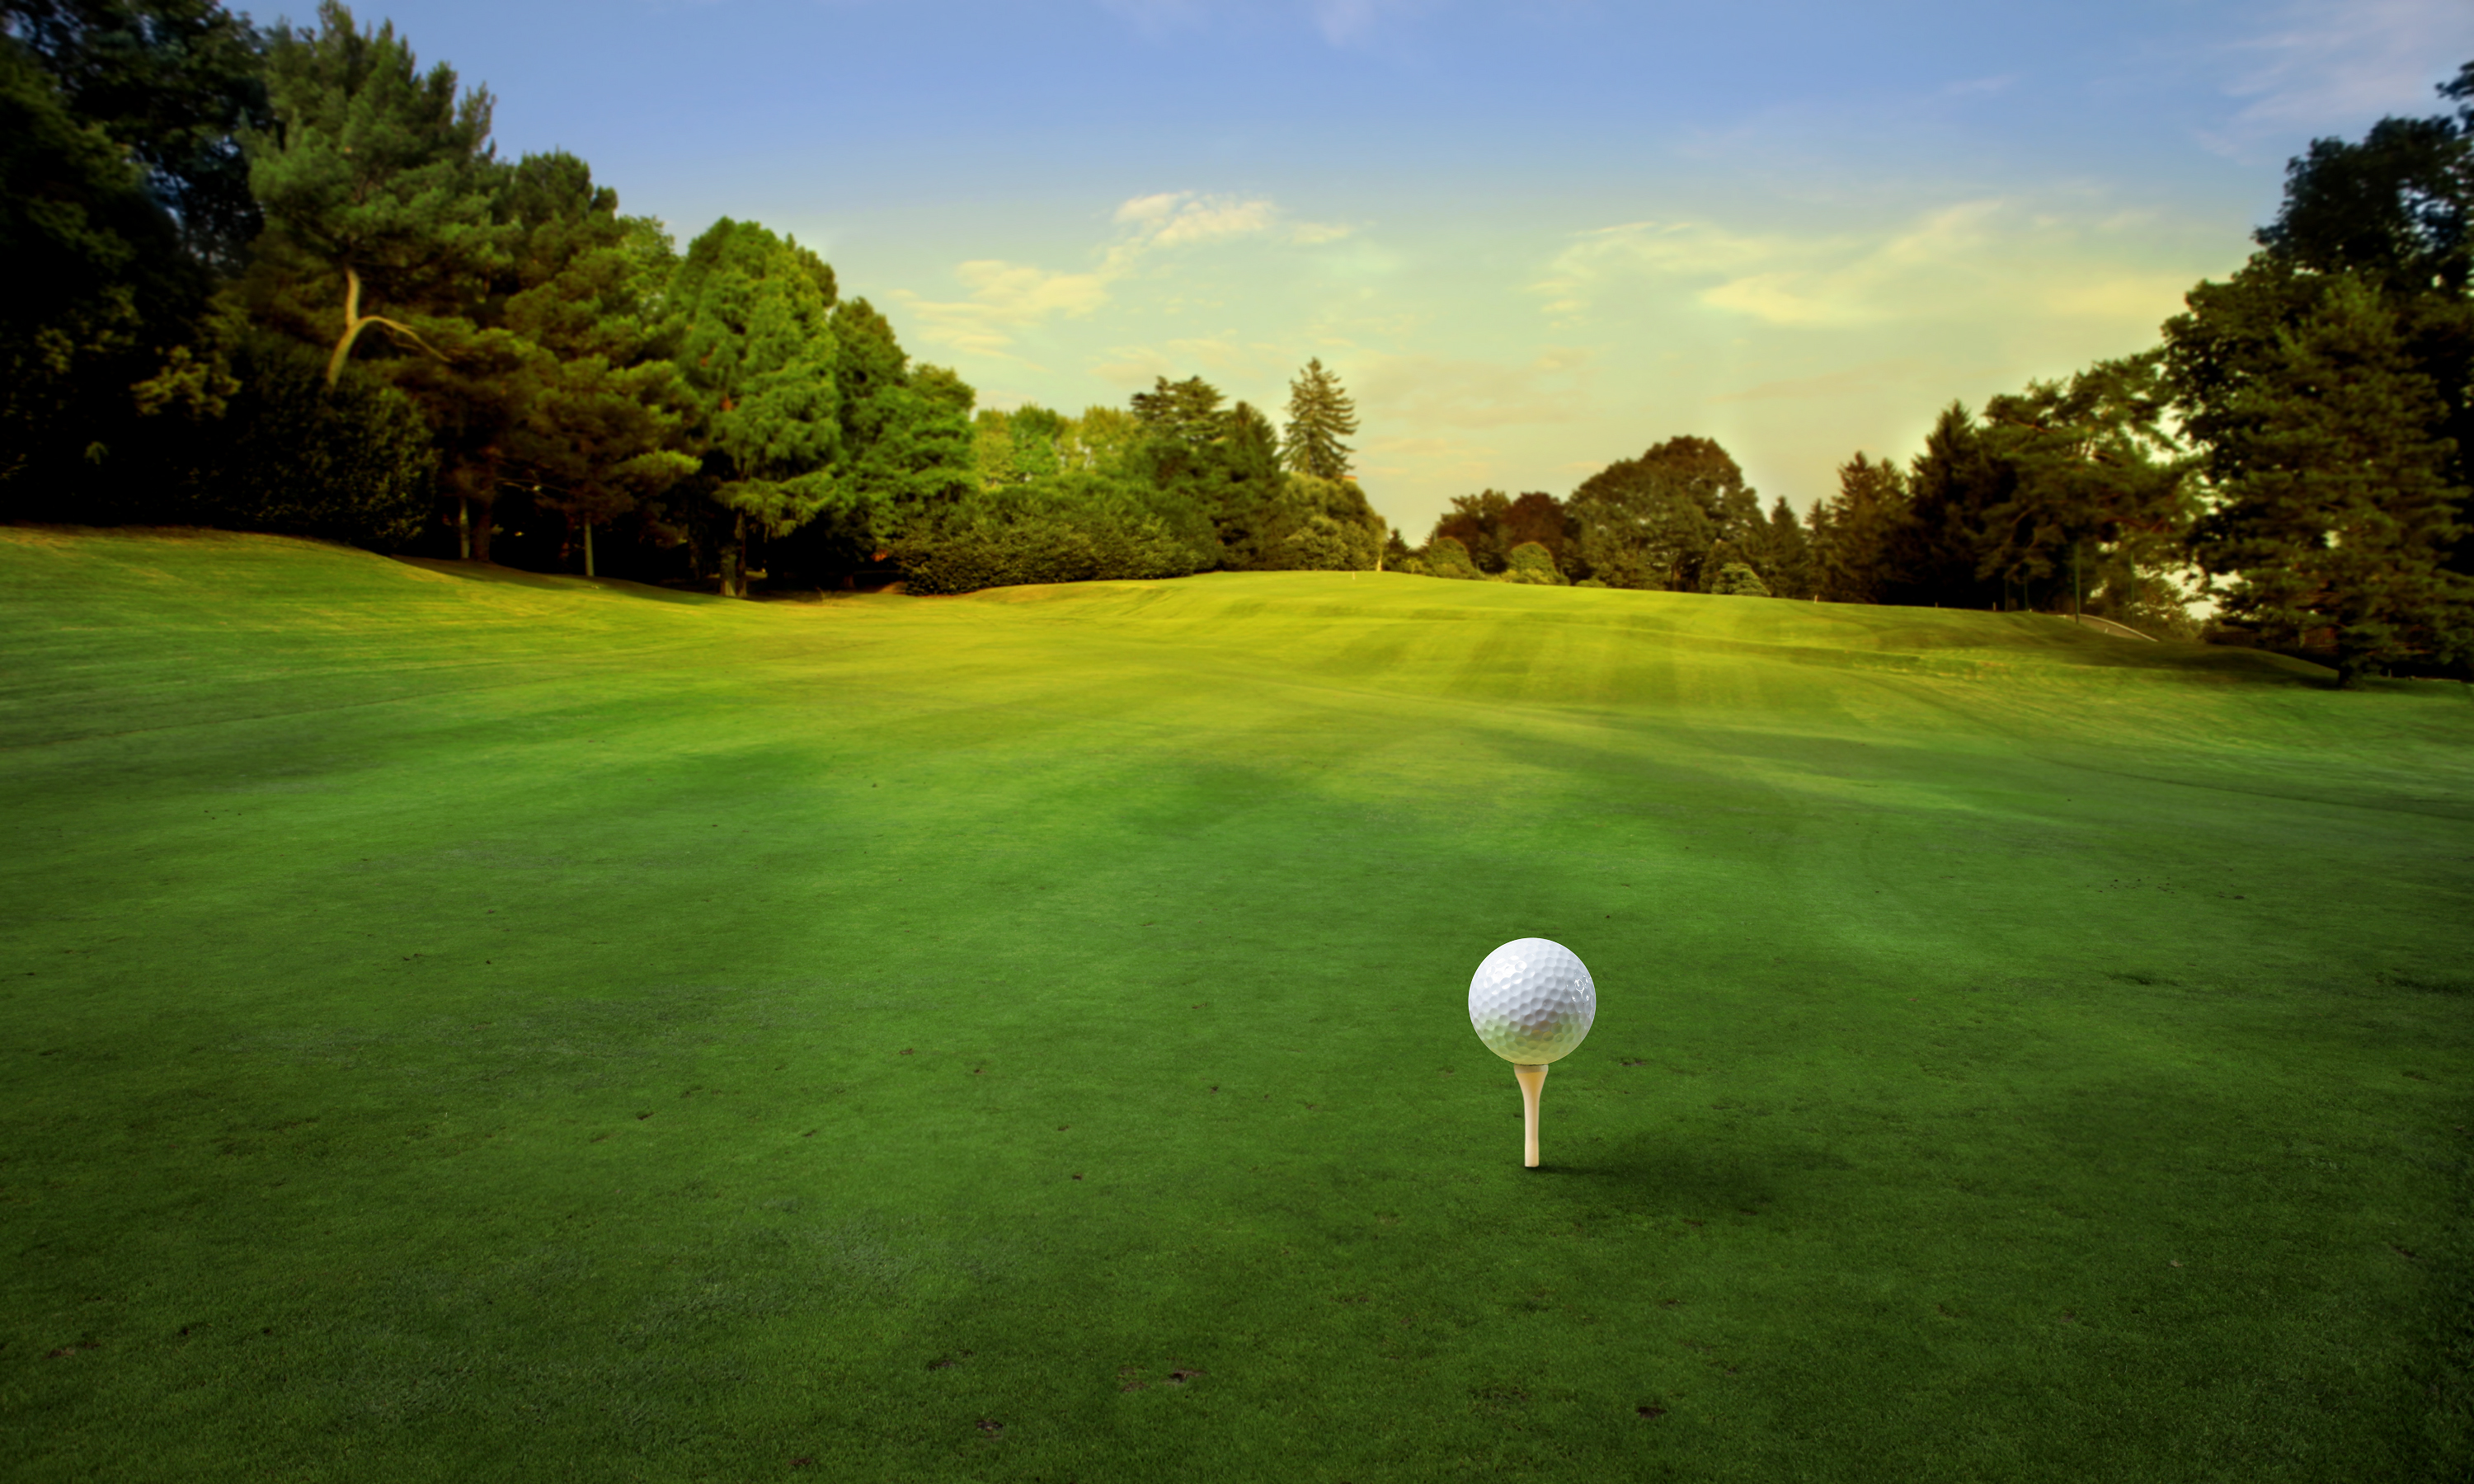 Golf-Course-high-res-wallpaper.jpg